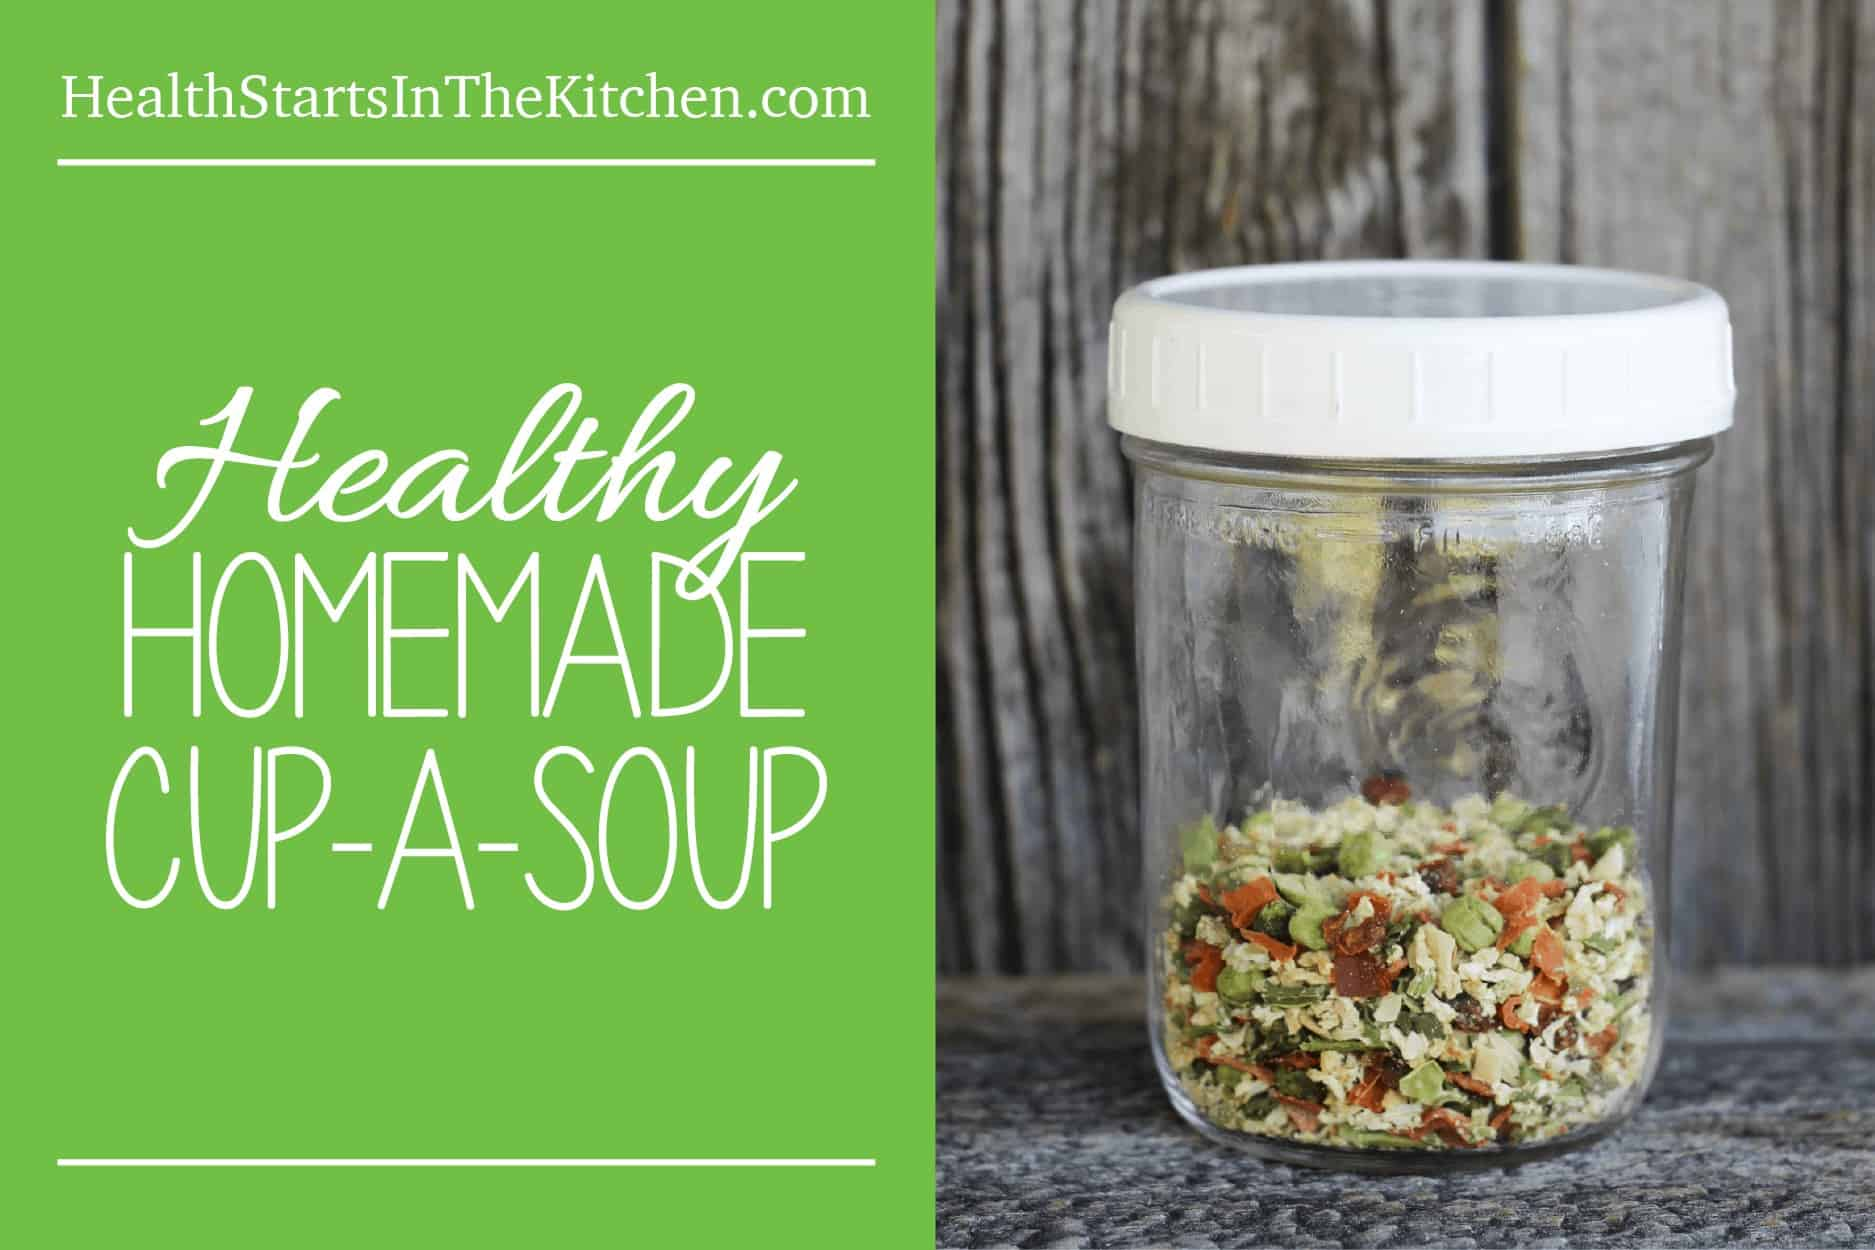 How to make Homemade Cup-A-Soup! Paleo, Low-carb, Vegetarian, Vegan & Low-Cal Friendly!